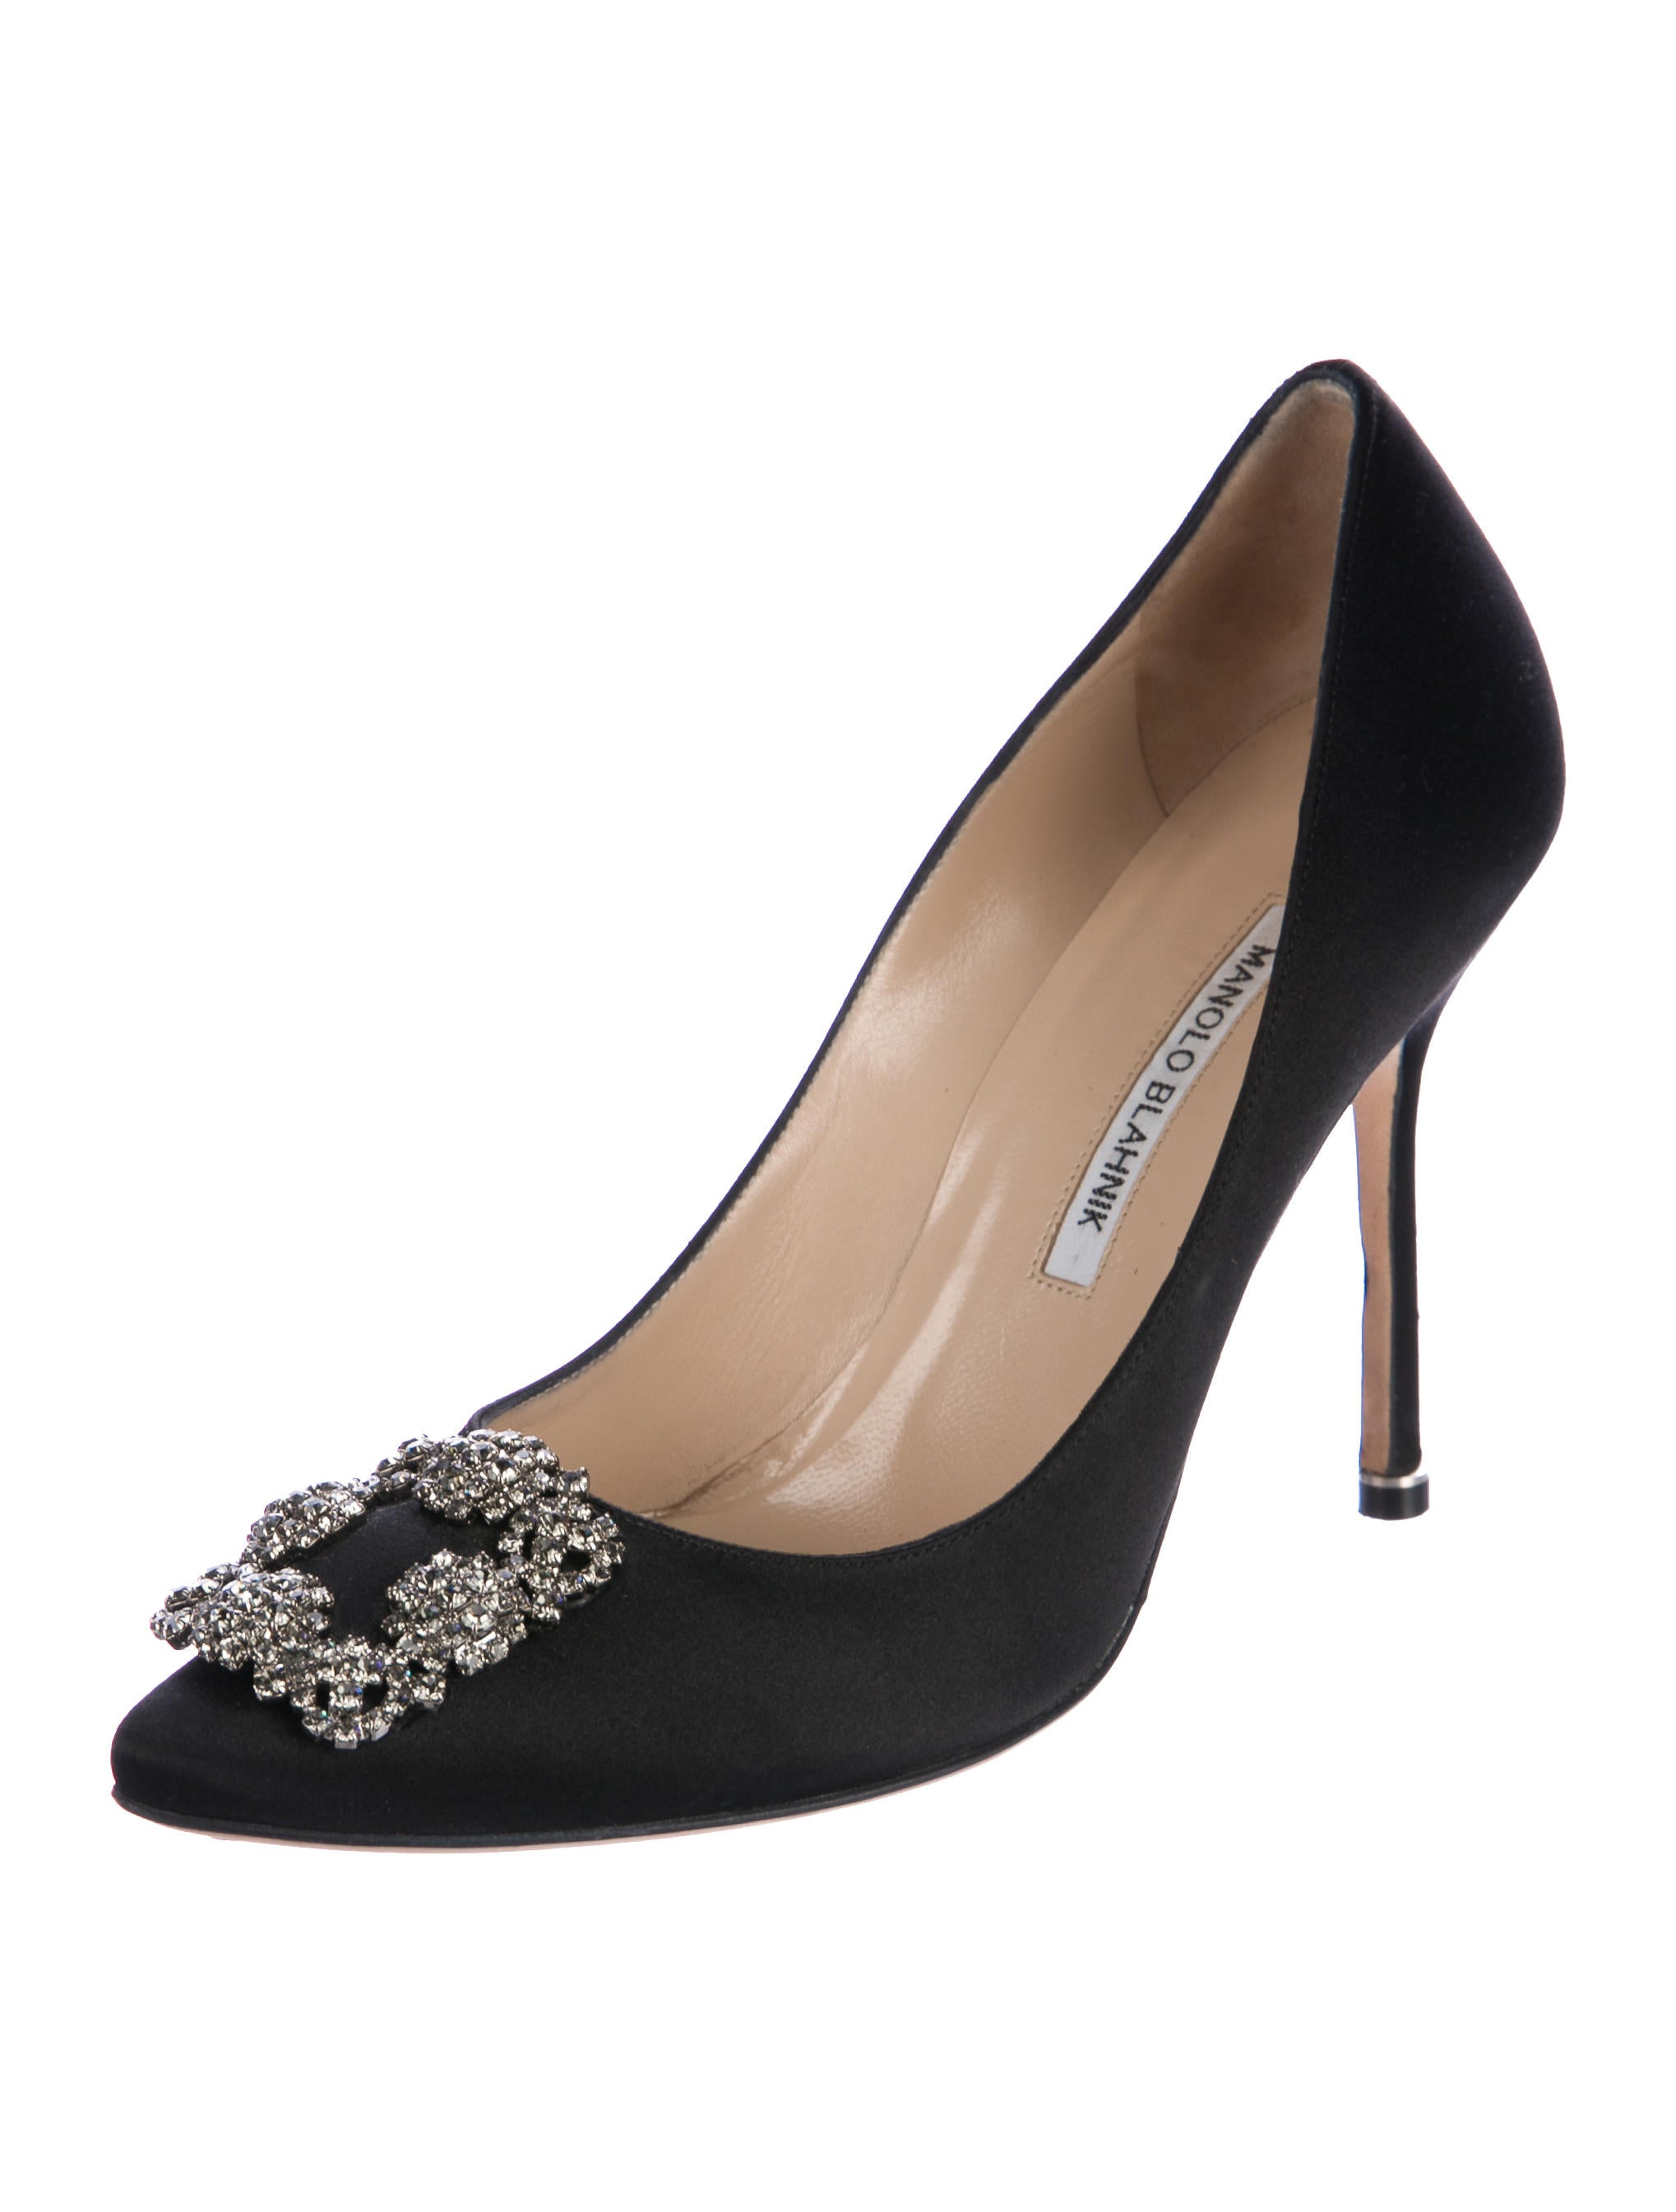 Manolo blahnik hangisi satin pumps shoes moo75497 for Shoes by manolo blahnik